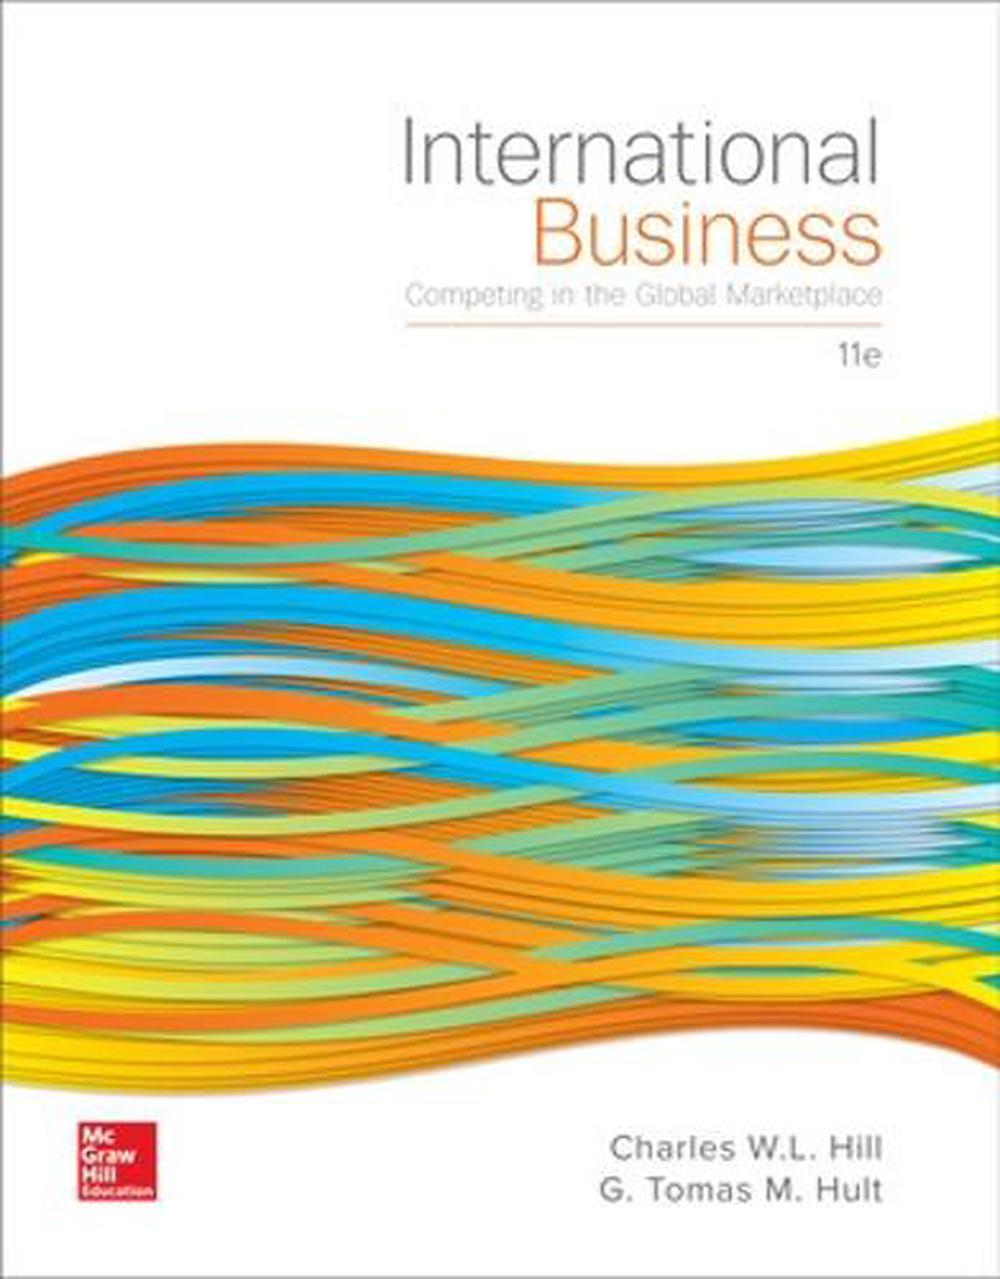 International Business: Competing in the Global Marketplace, 11th Edition